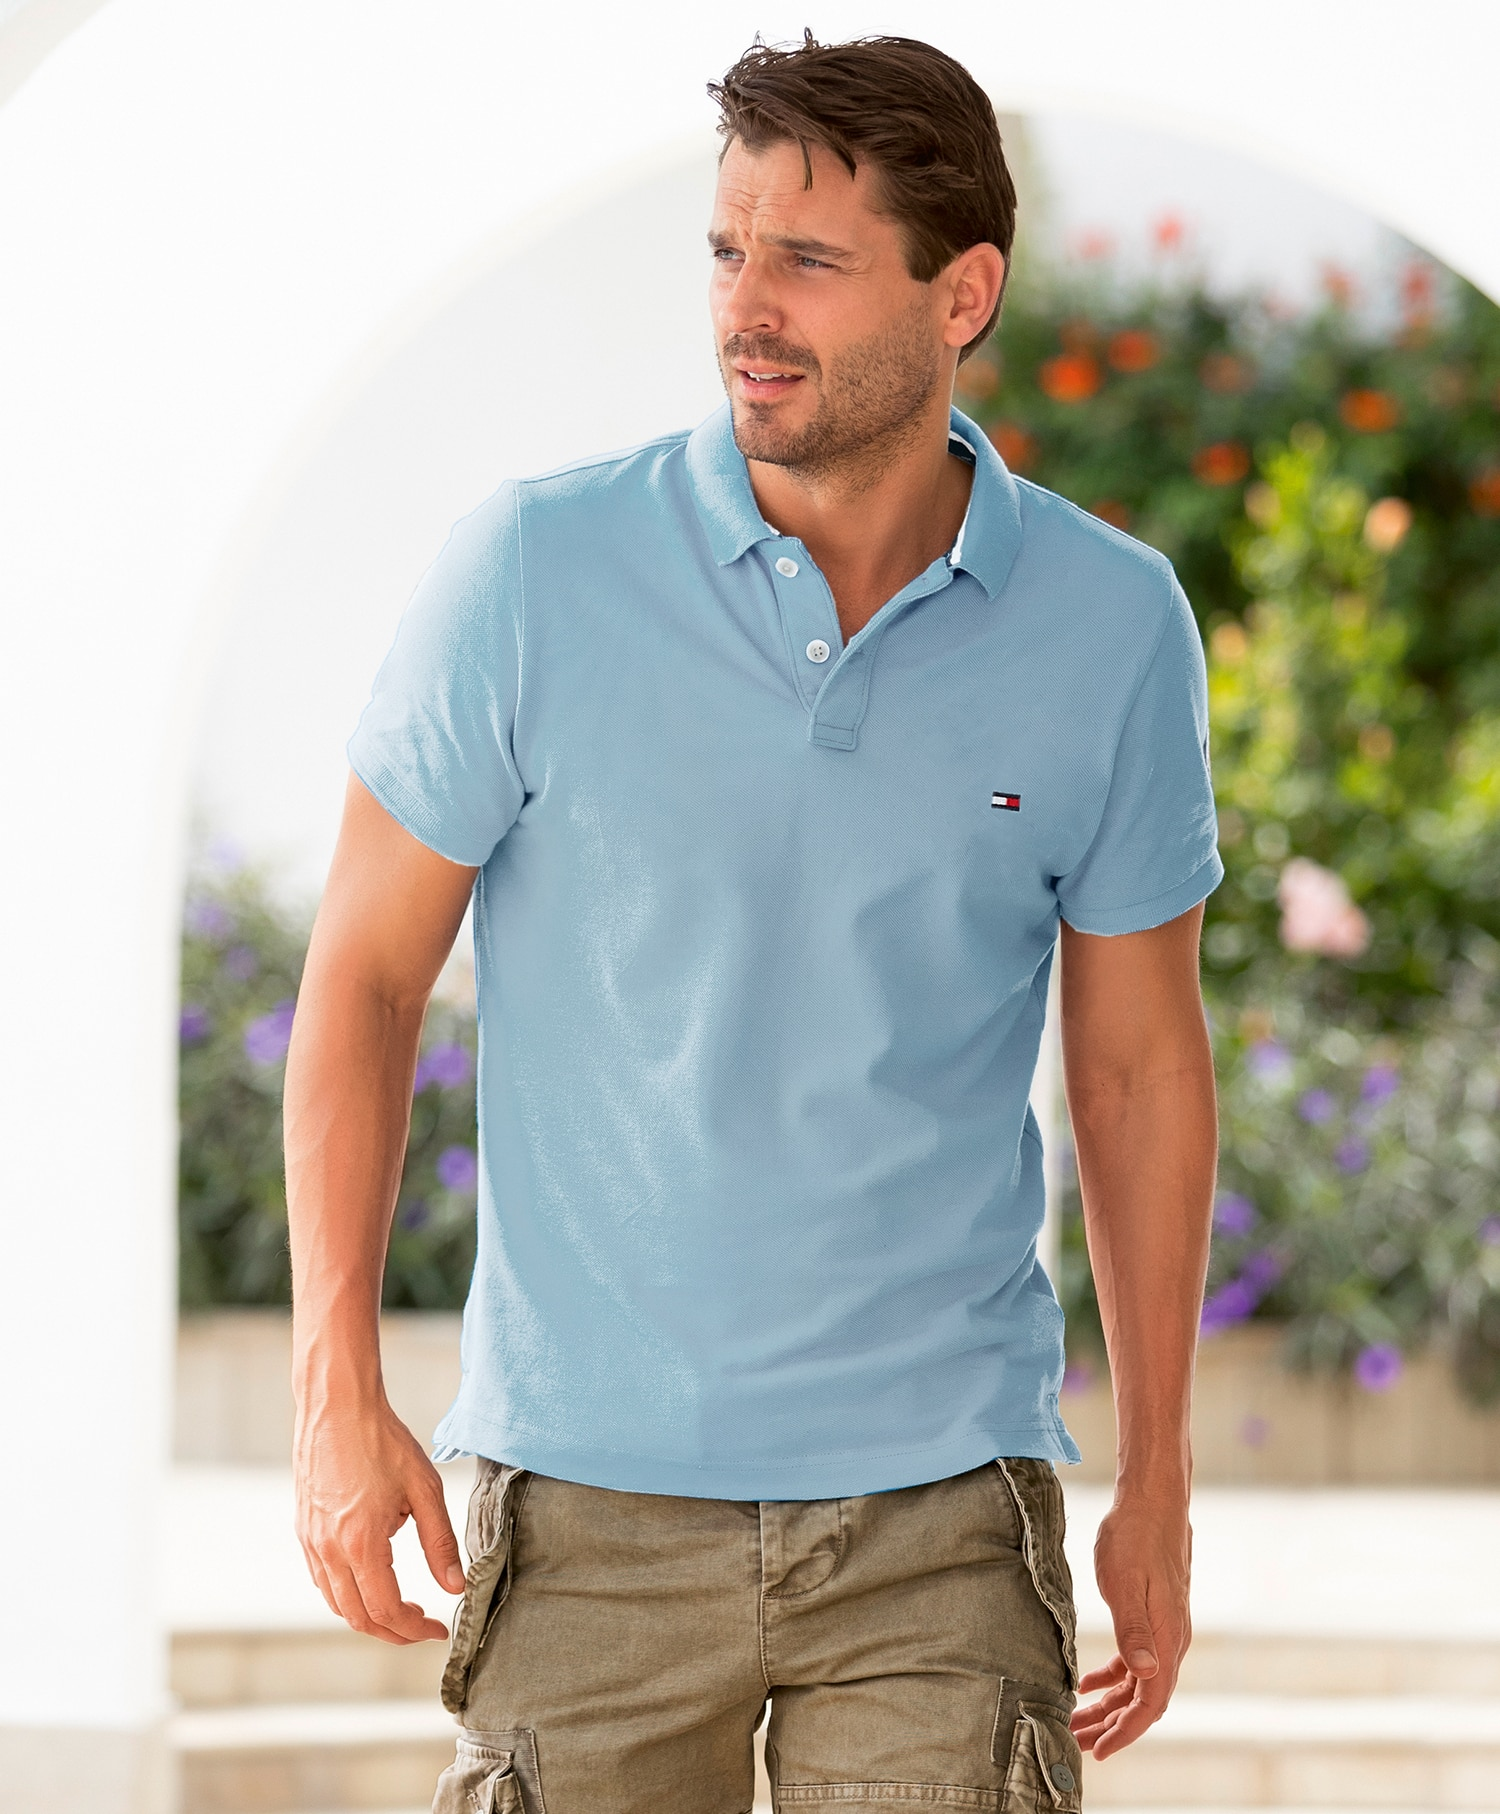 Tommy Hilfiger 1985 Polo